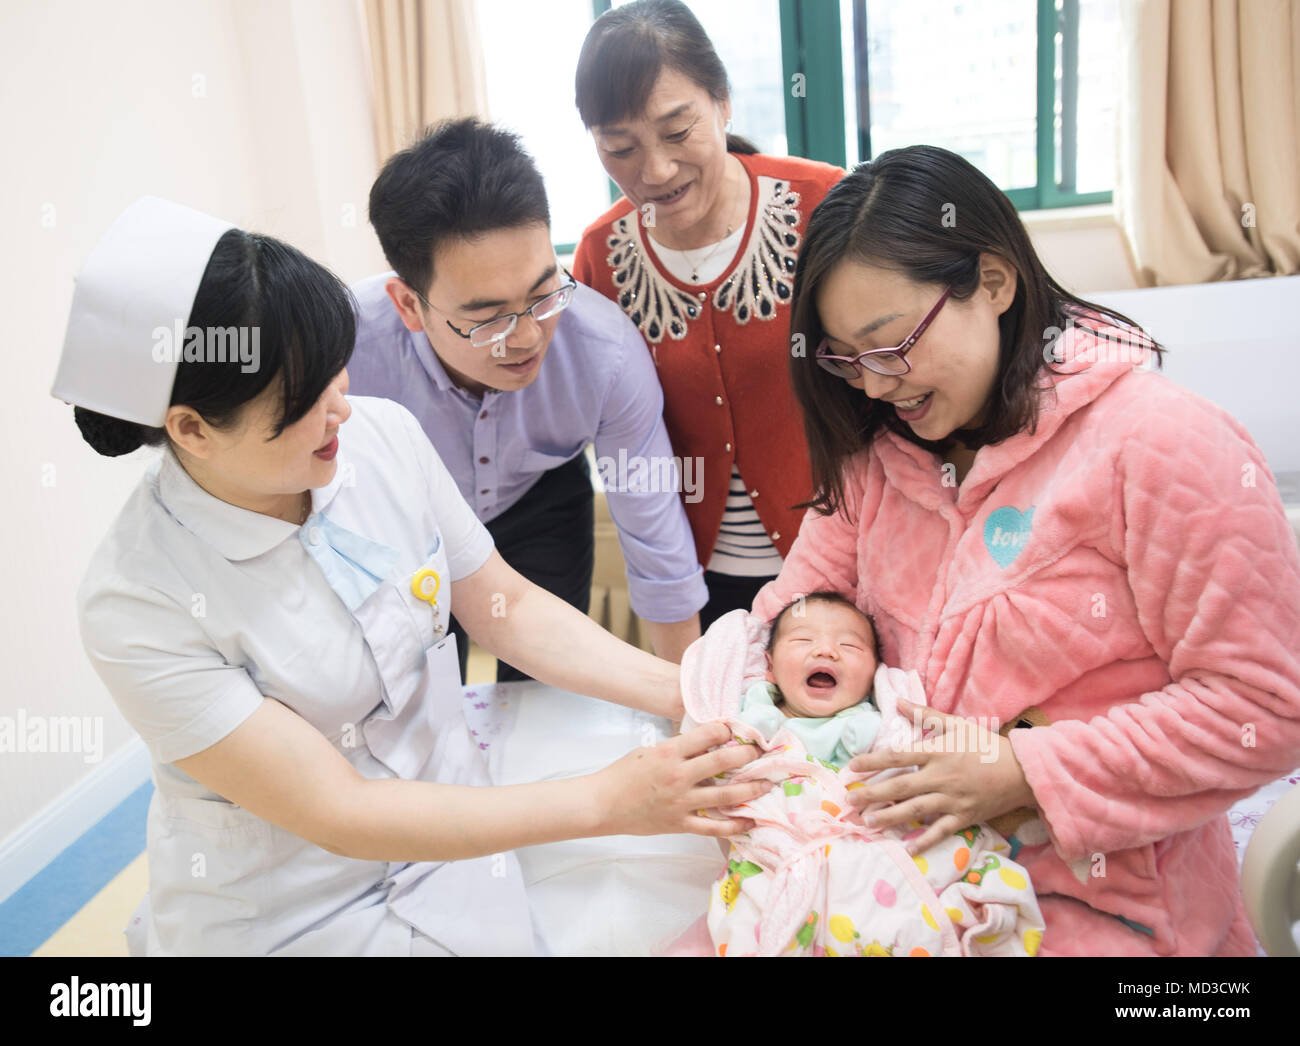 Wuhan, China's Hubei Province. 18th Apr, 2018. A medical worker (1st L, front) directs a new mother to take care of her baby at a maternity ward in Wuhan Women and Children Medical Care Center in Wuhan, capital of central China's Hubei Province, April 18, 2018. A total of 17 new maternity wards opened here recently to offer comprehensive medical service in labor, delivery, recovery and postpartum phases. New mothers, accompanied by their families, can receive the medical treatment at these separate wards before and after giving birth. Credit: Xiong Qi/Xinhua/Alamy Live News - Stock Image